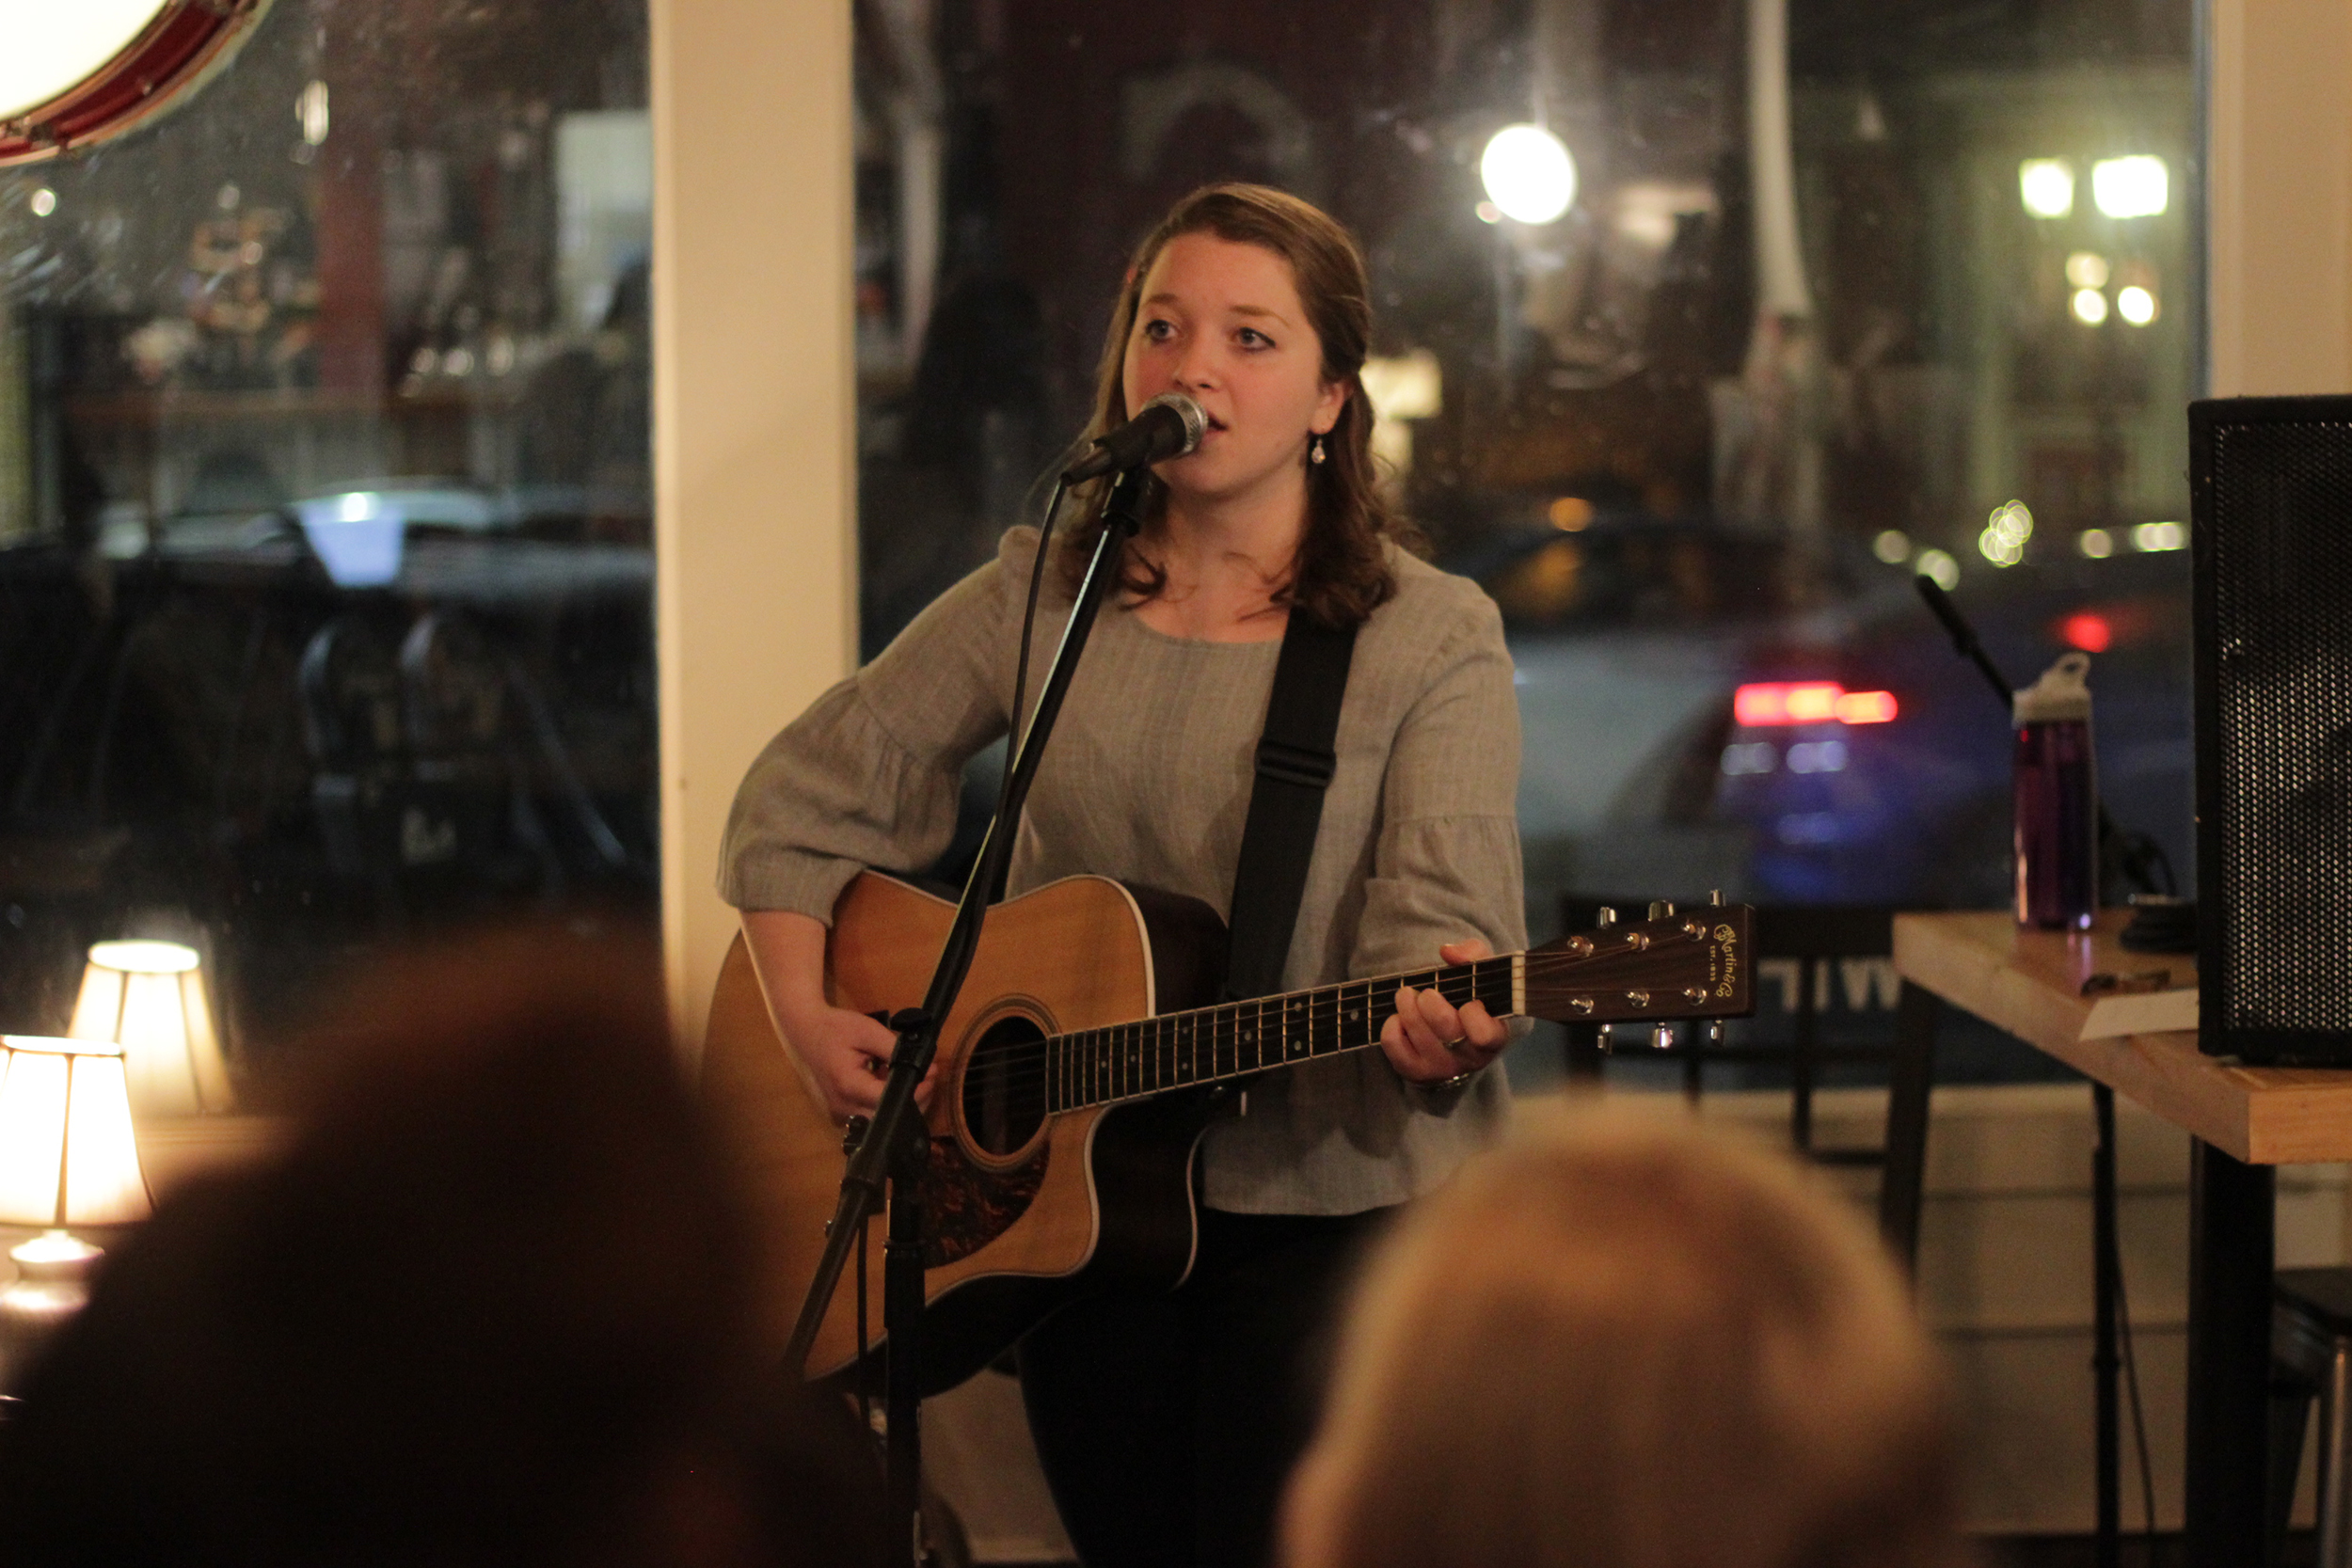 Pictured above is communication major senior Allison Leah, who performed alongside the band Straw Hat at Cricket's Coffee Company on Thursday Feb. 1. Straw Hat includes vocalist senior Jennifer Bender, drummer sophomore Marty Bezinger and guitarist Noah Ellis, who is a student at Monroe Community College. (Mike Wall/Staff Photographer)